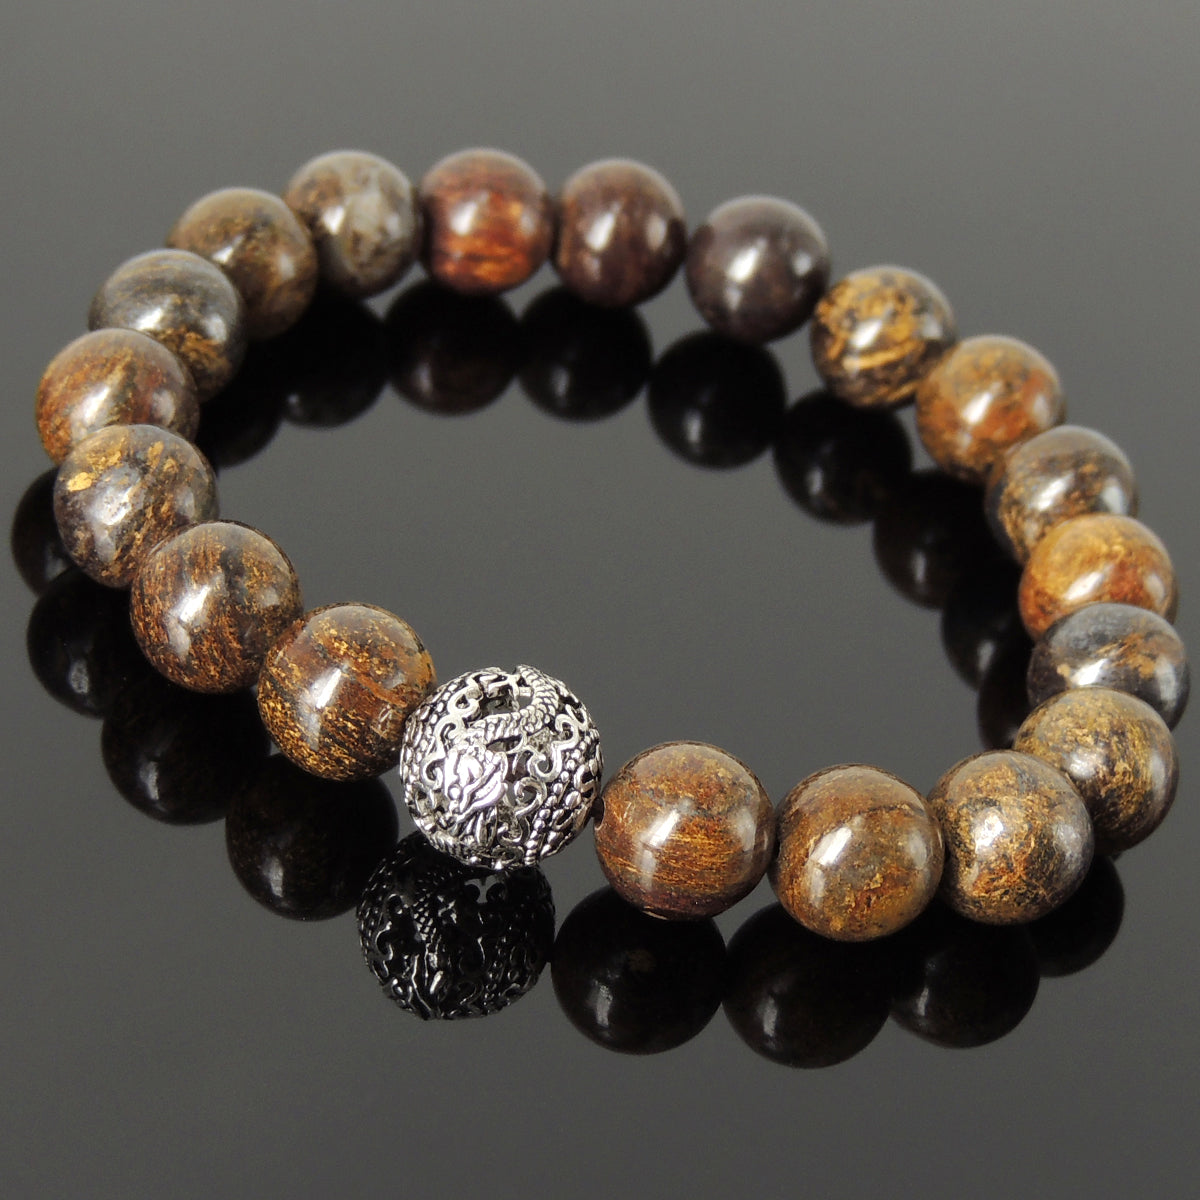 10mm Bronzite Stone Healing Bracelet with S925 Sterling Silver Dragon Protection Bead - Handmade by Gem & Silver BR1194